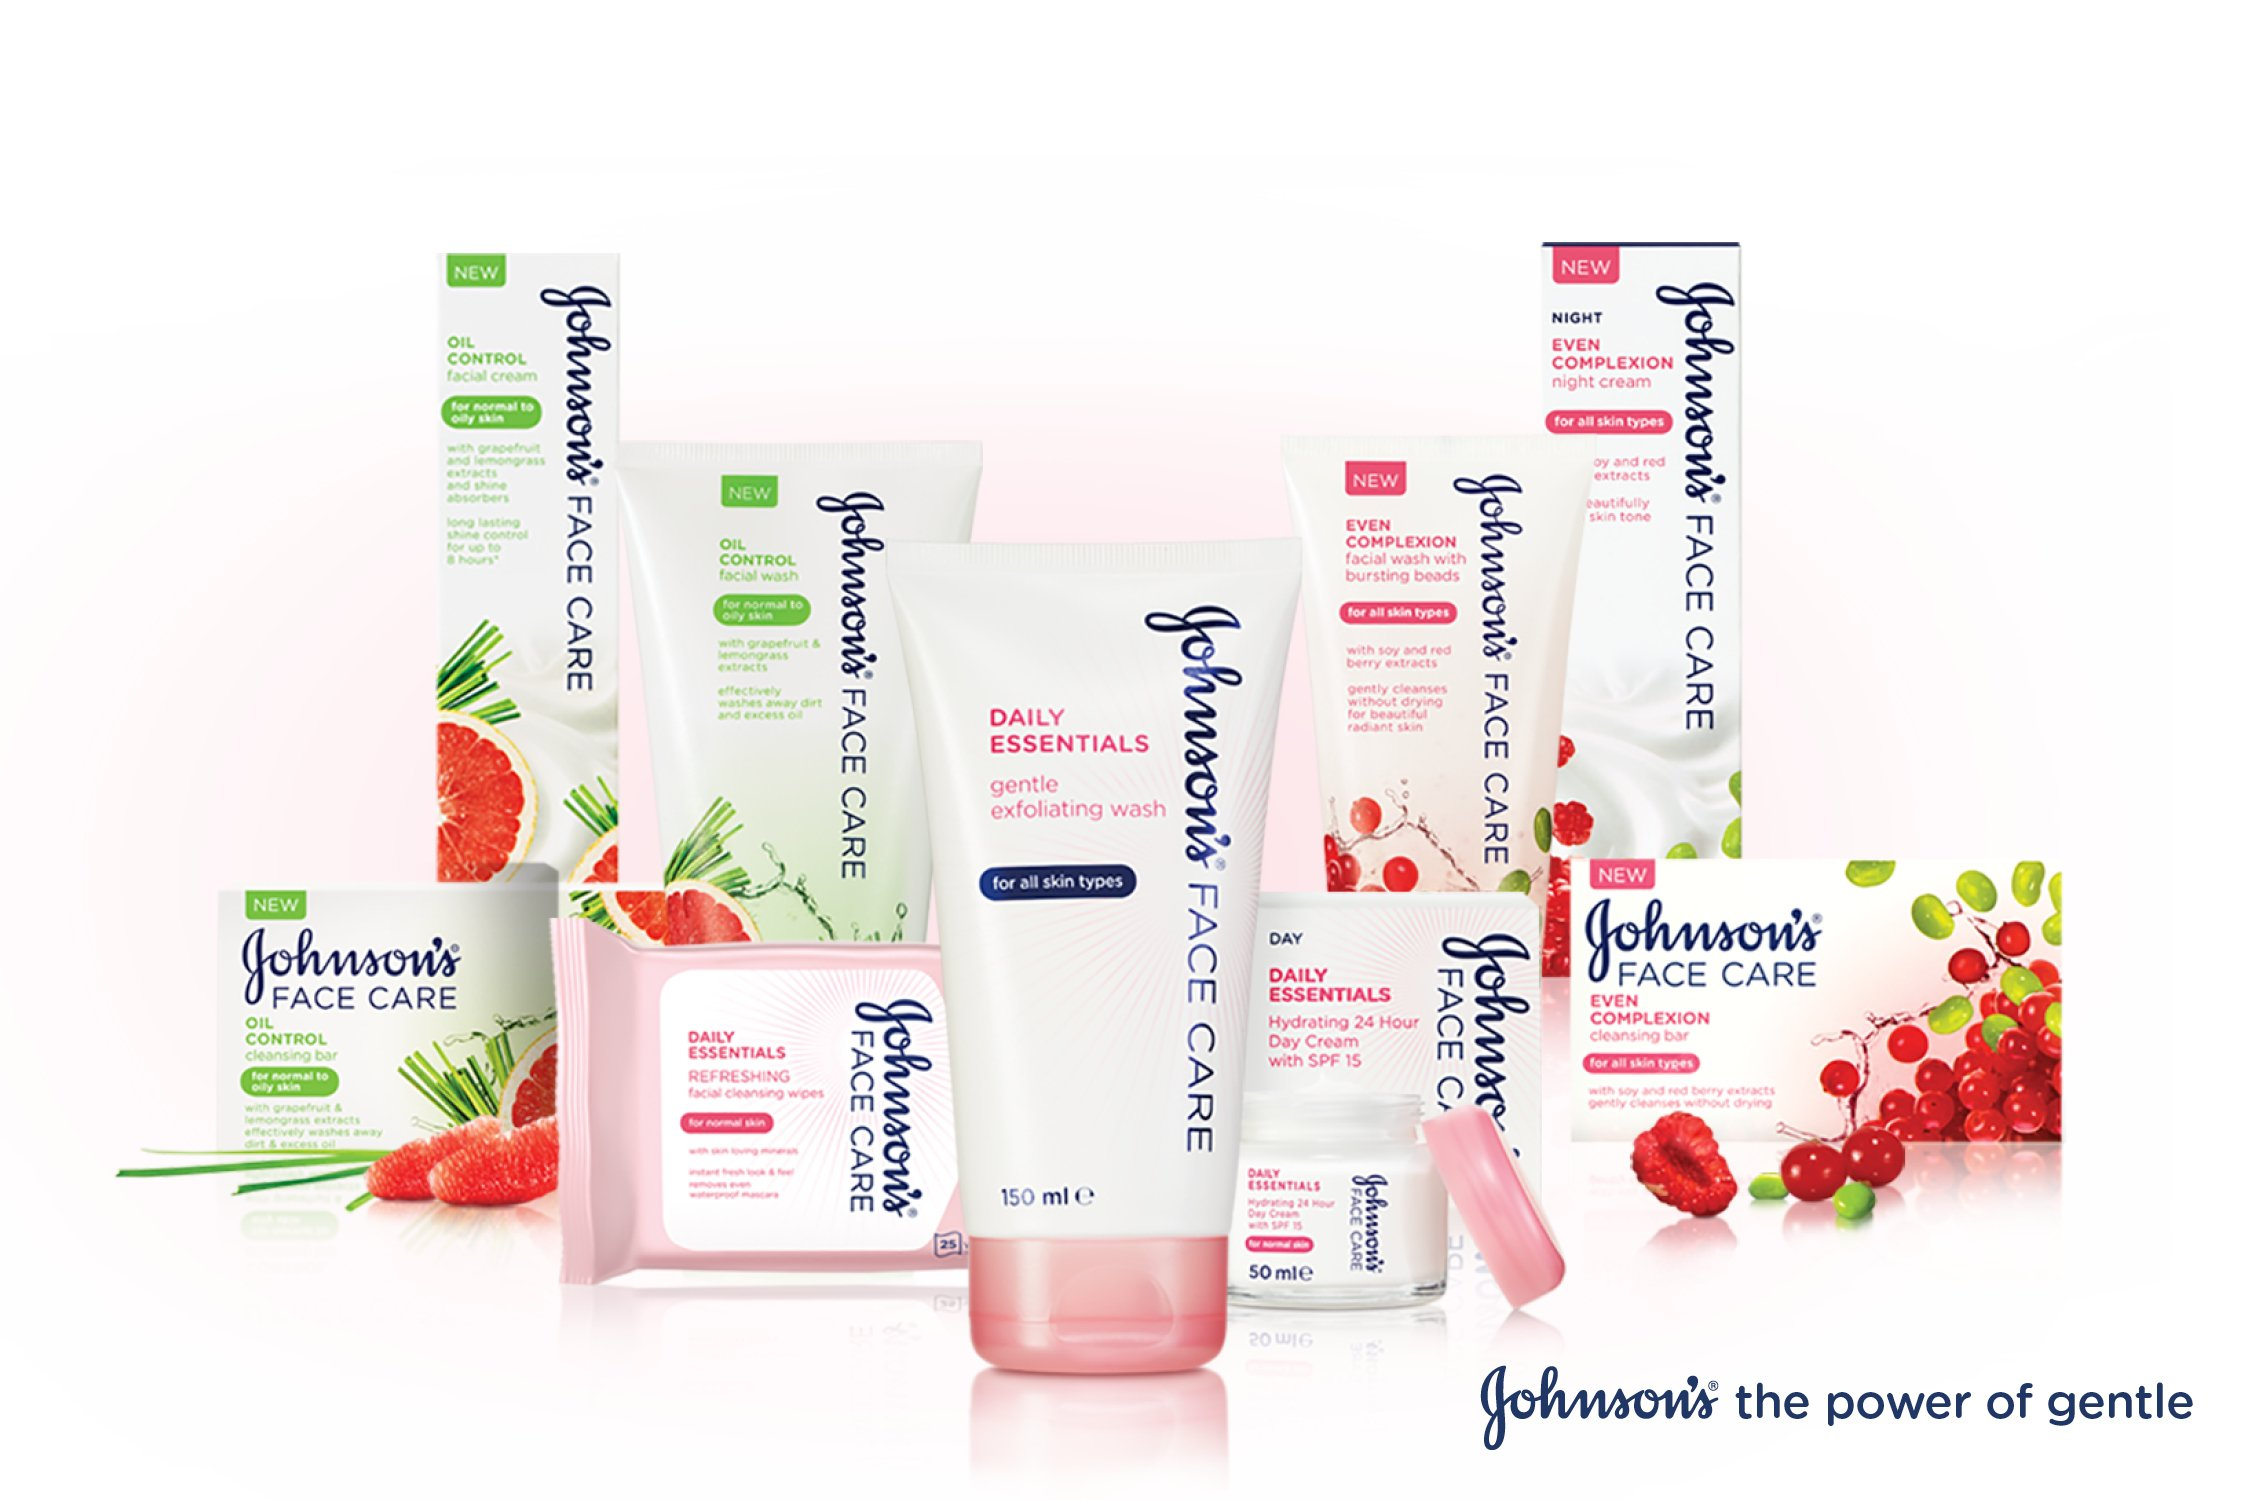 Johnson's Face Care